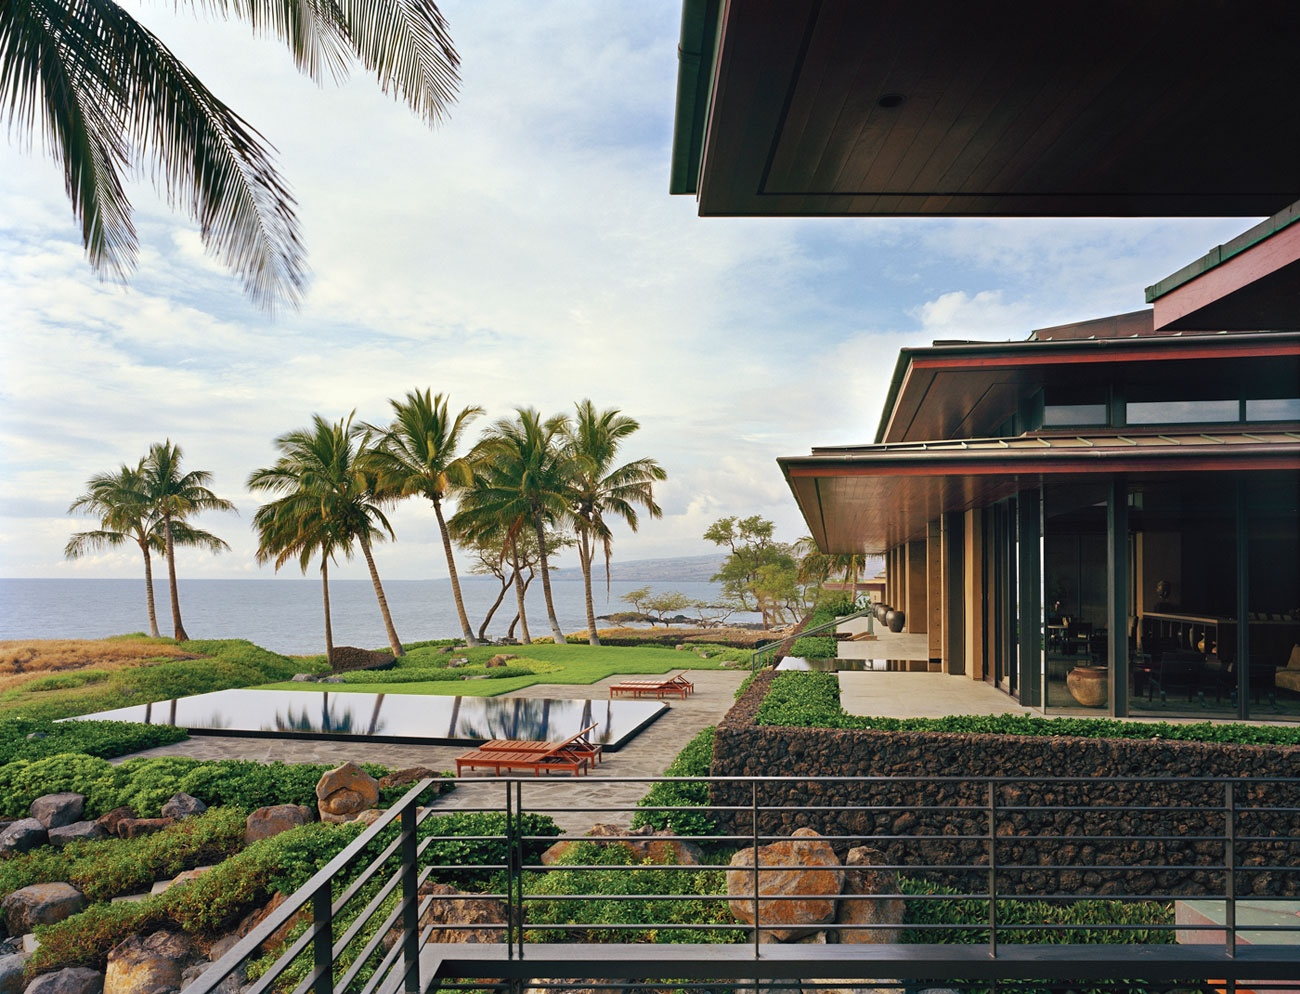 Beautiful Balinese Style House In Hawaii on raised bungalow house designs, raised shore house designs, waterfront home on pilings designs, raised coastal homes, raised small home designs, raised beach house plans, raised southern house, houses on hillsides designs, raised garden designs, california contemporary home on stilts designs,